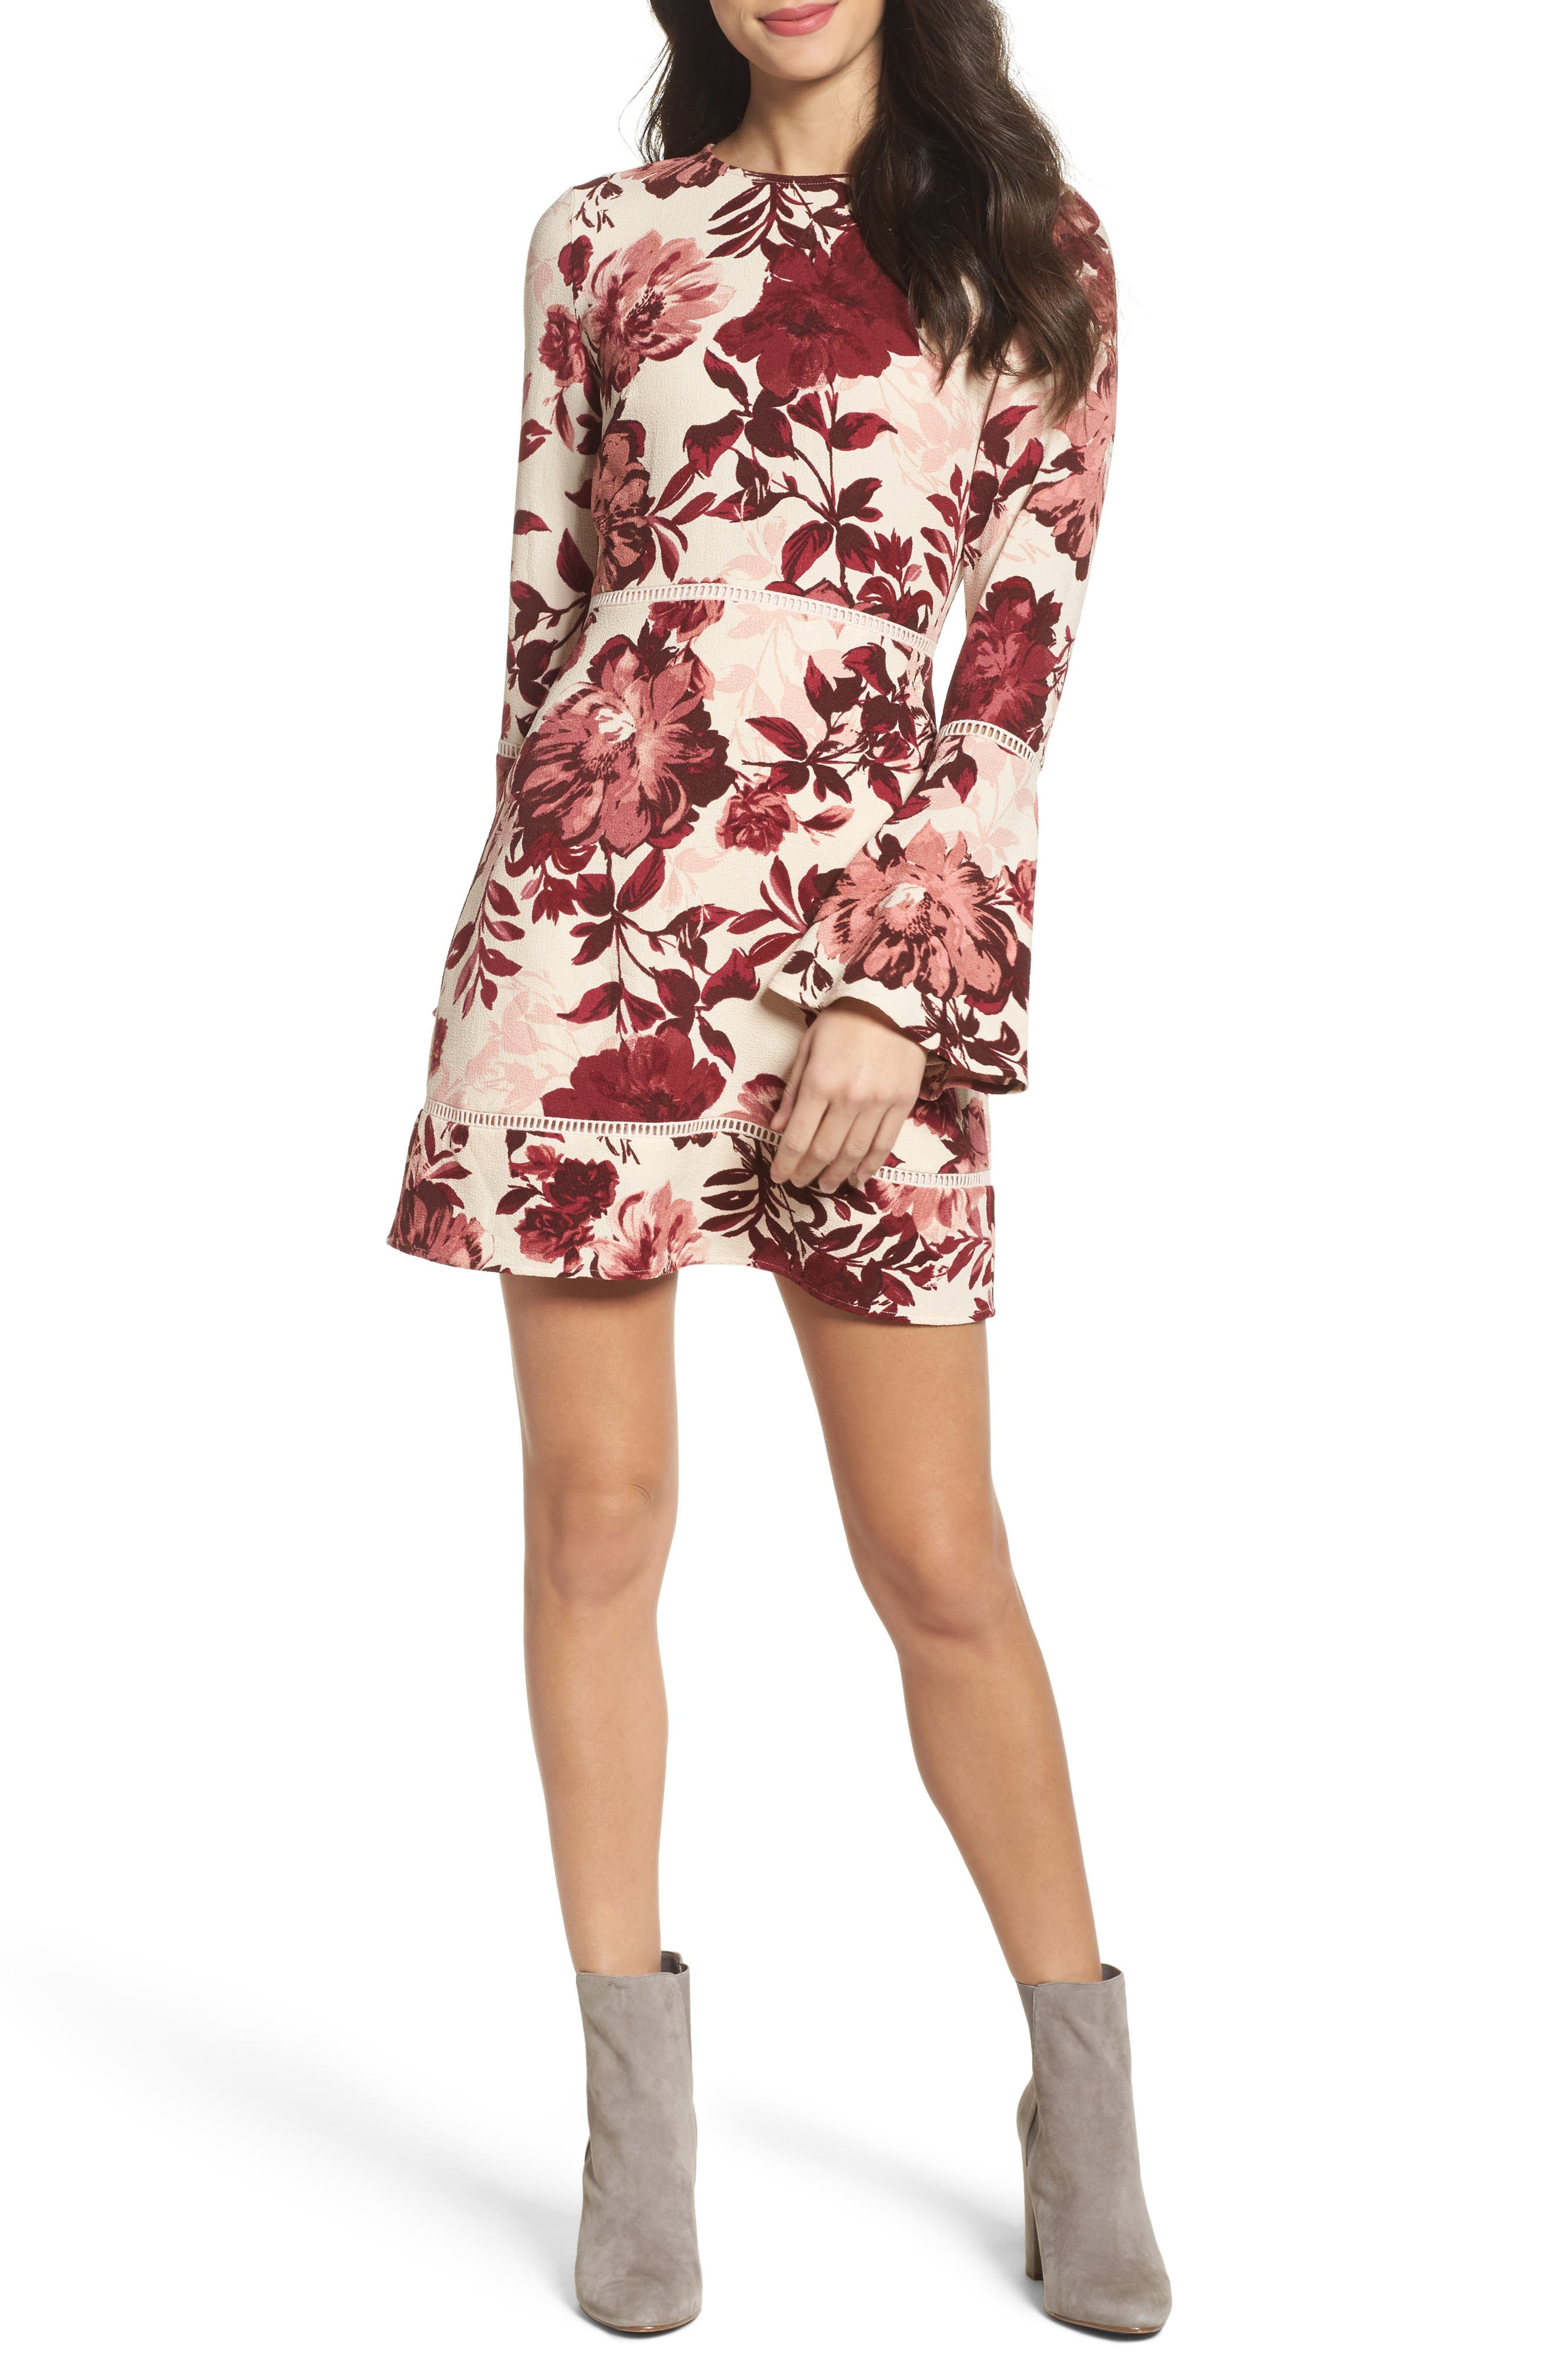 Bell Sleeve Minidress,                         Main,                         color, Blush/ Burgundy Floral